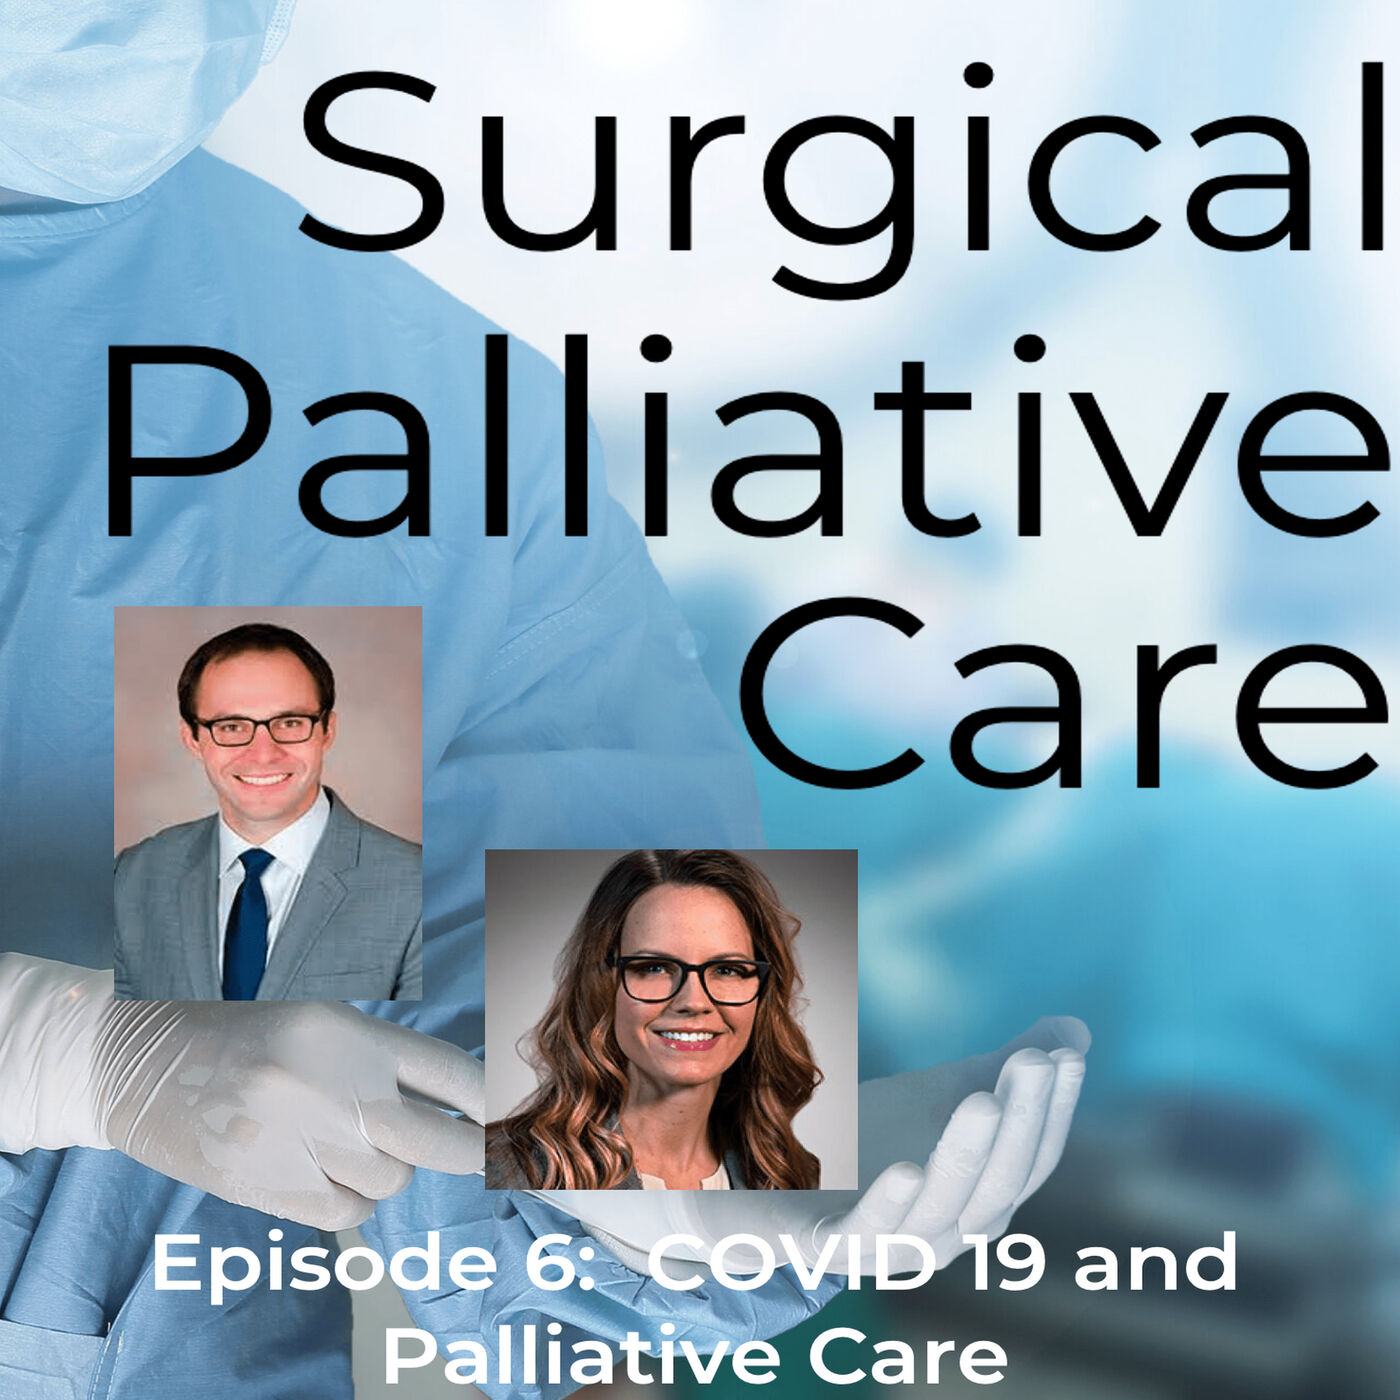 COVID-19 and the Role of Surgical Palliative Care